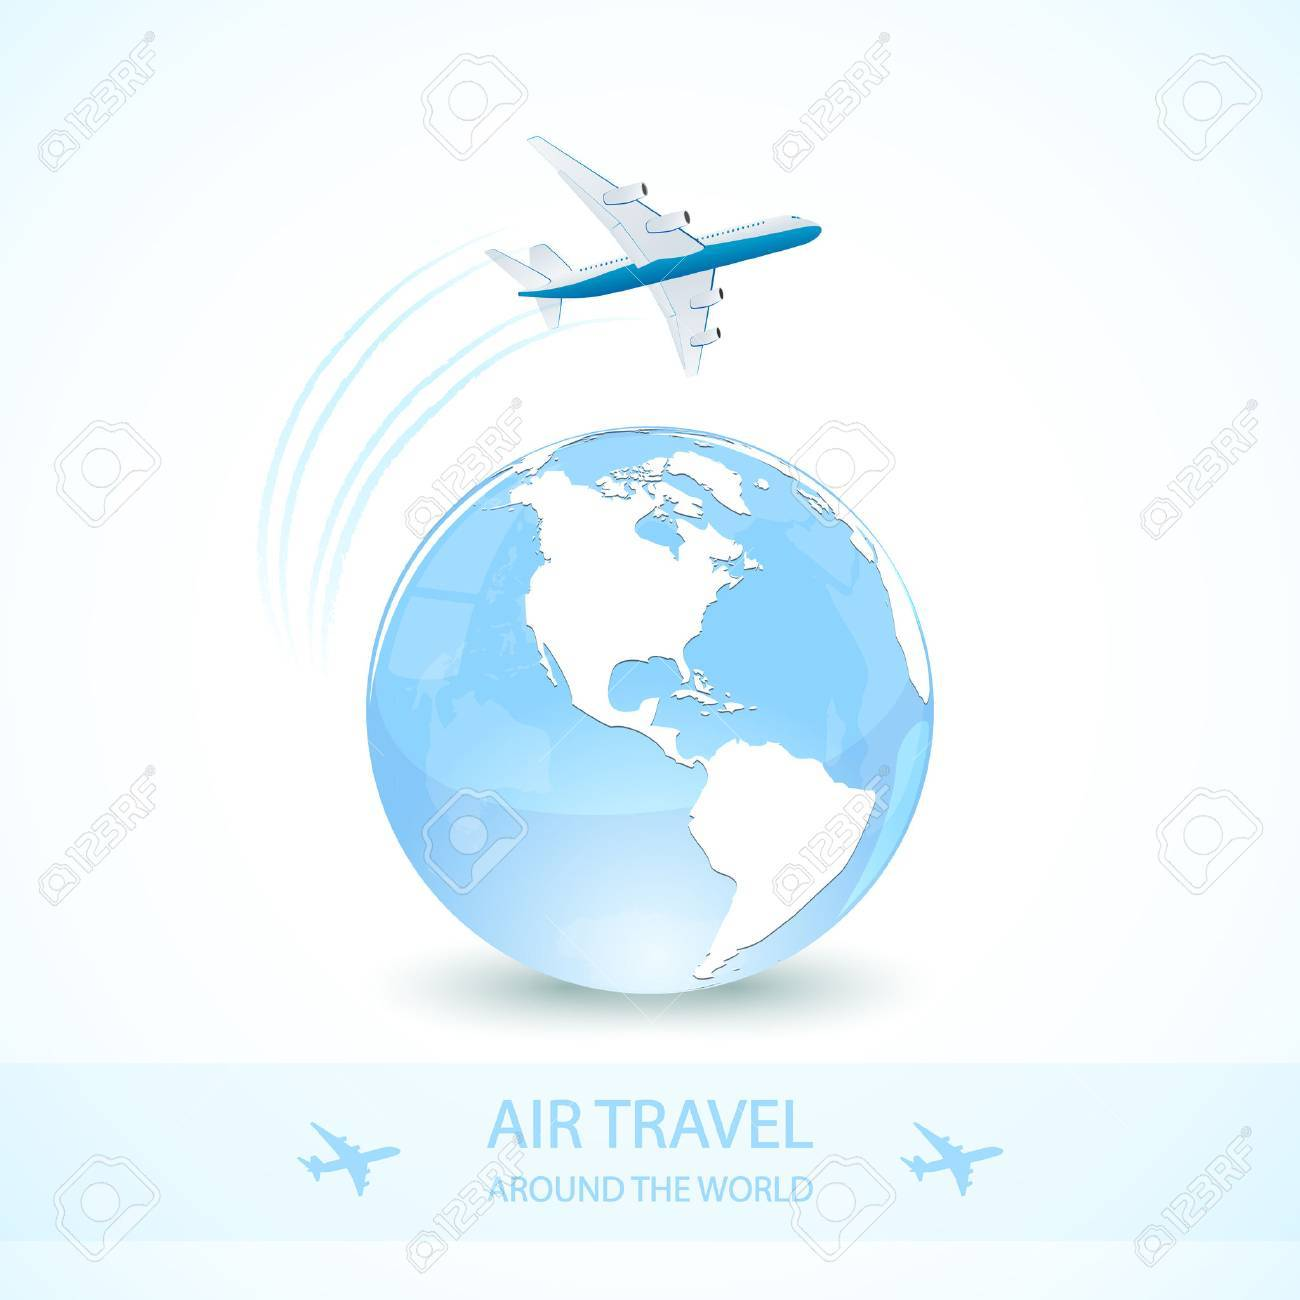 Air travel with white plane and earth globe, around the world, illustration. - 54942505